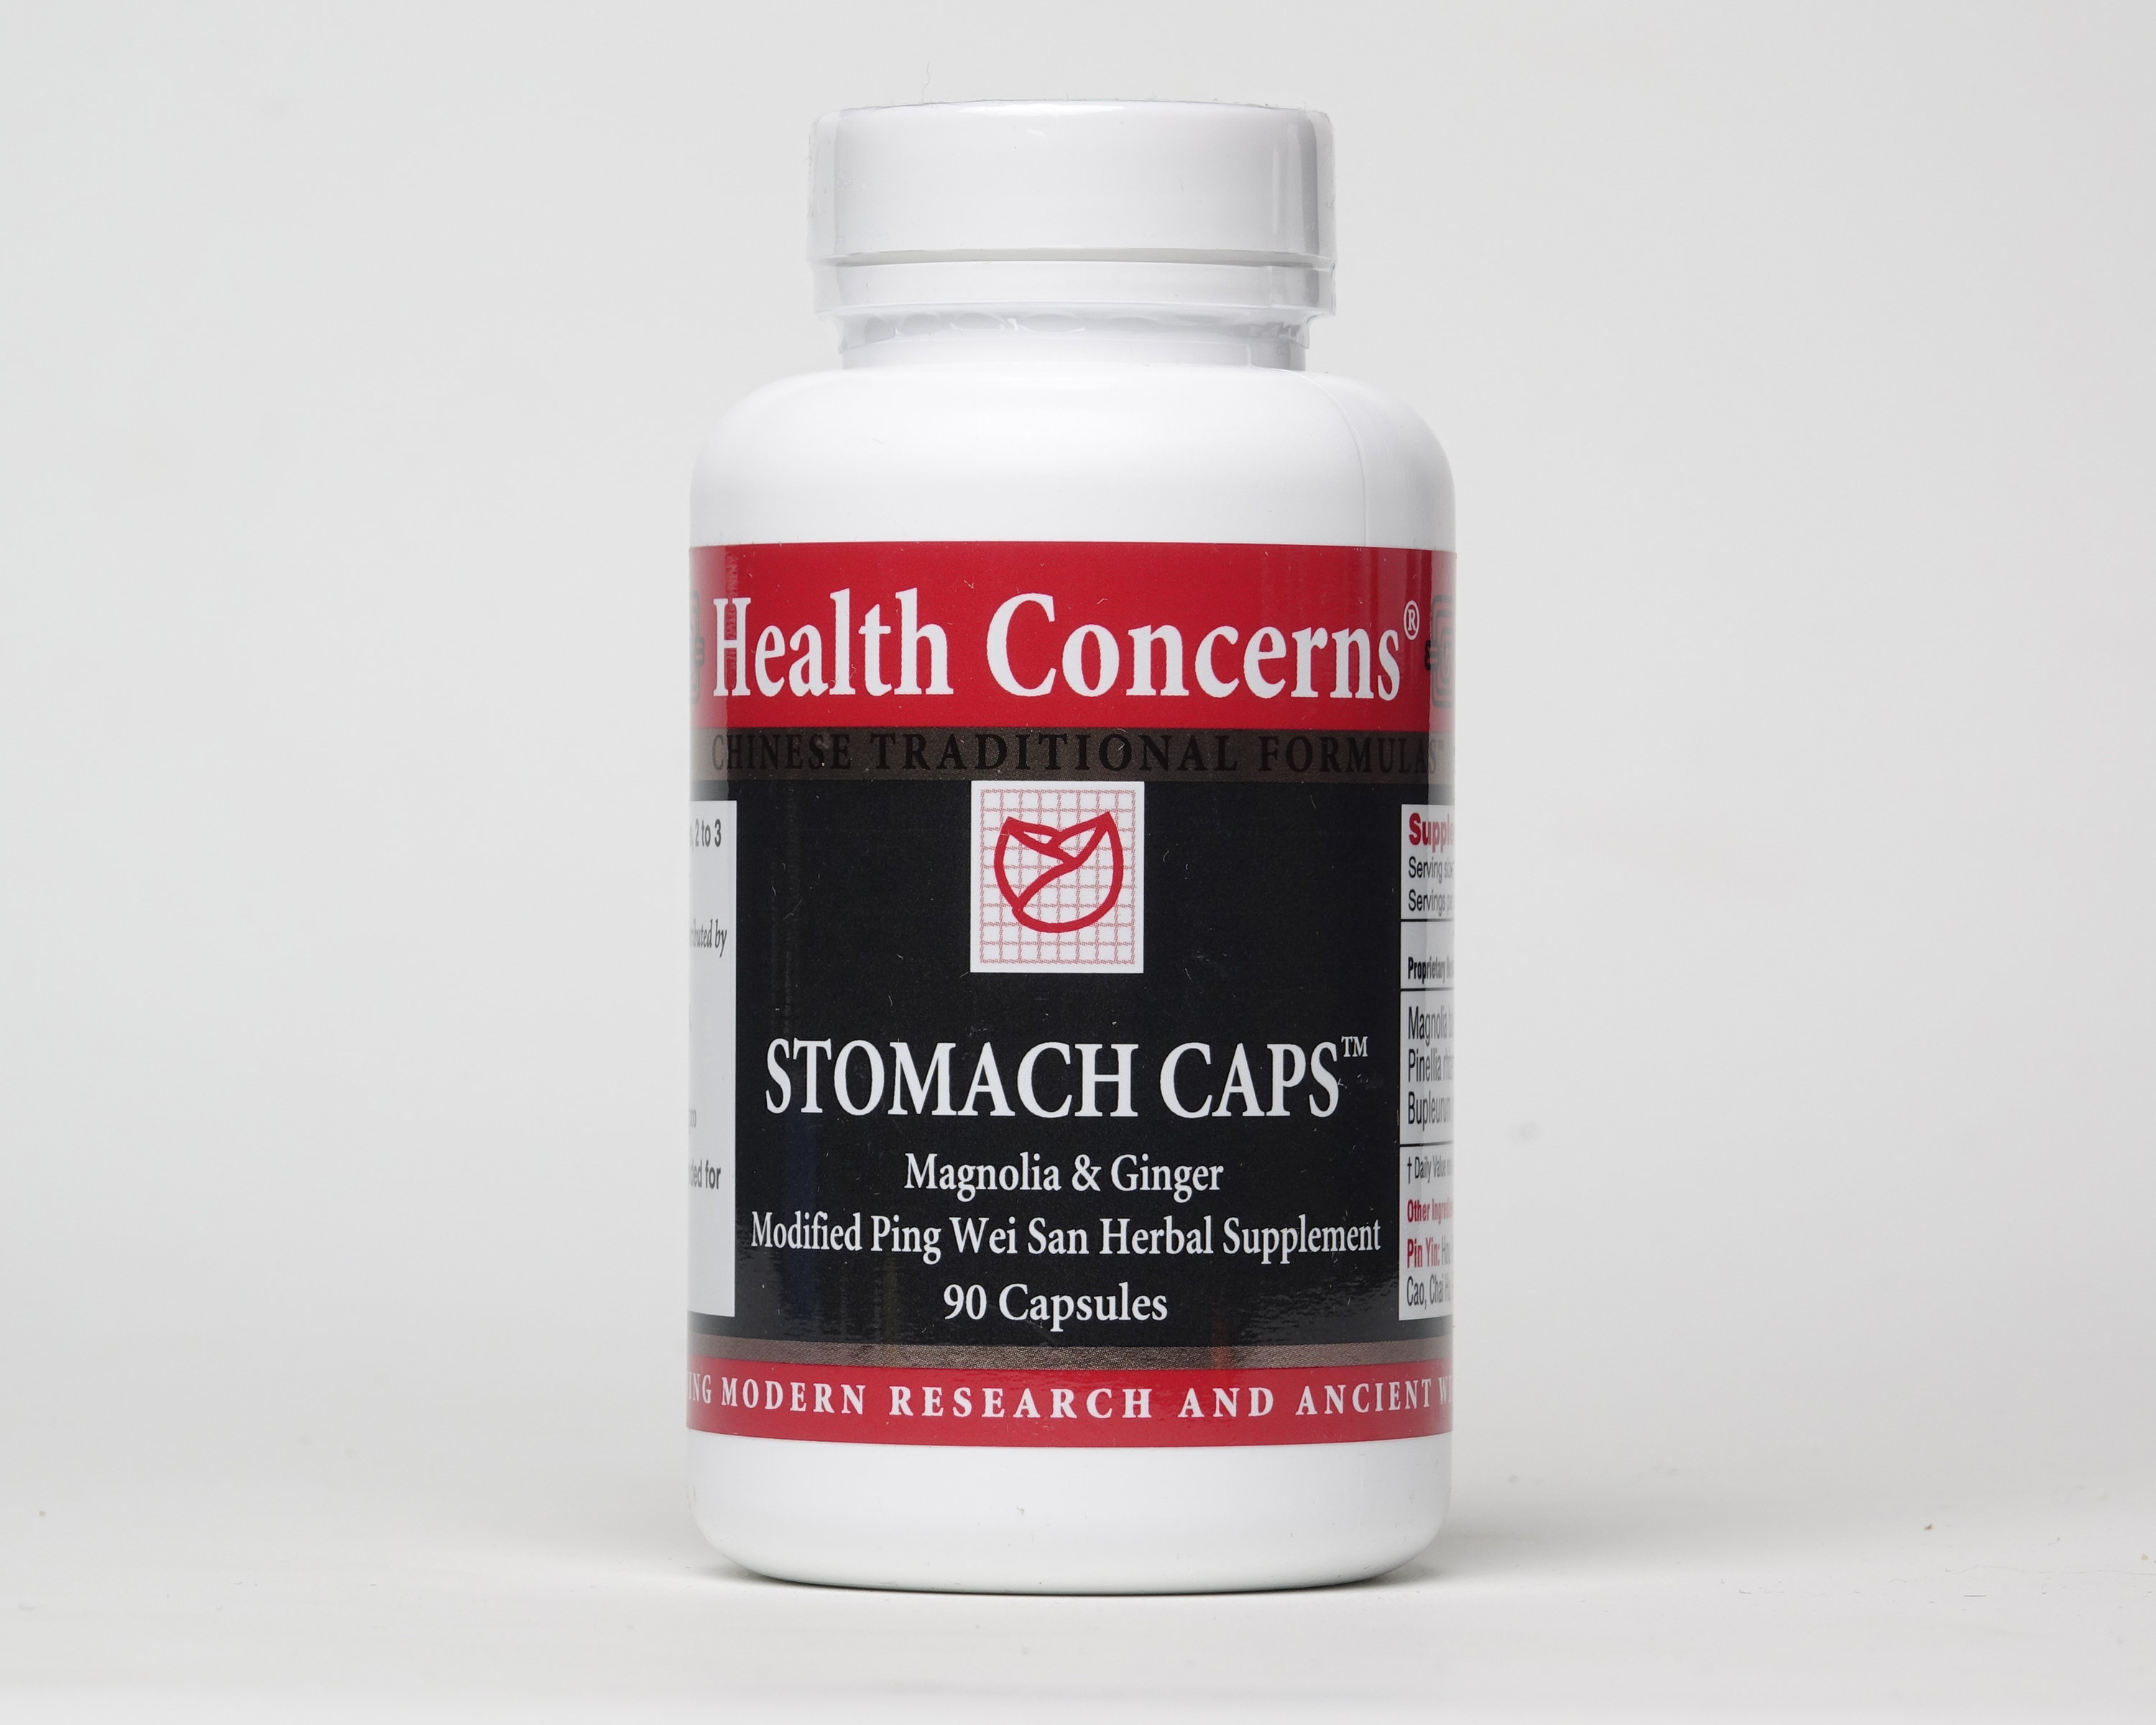 Stomach Caps (Magnolia & Ginger Herbal Supplement)